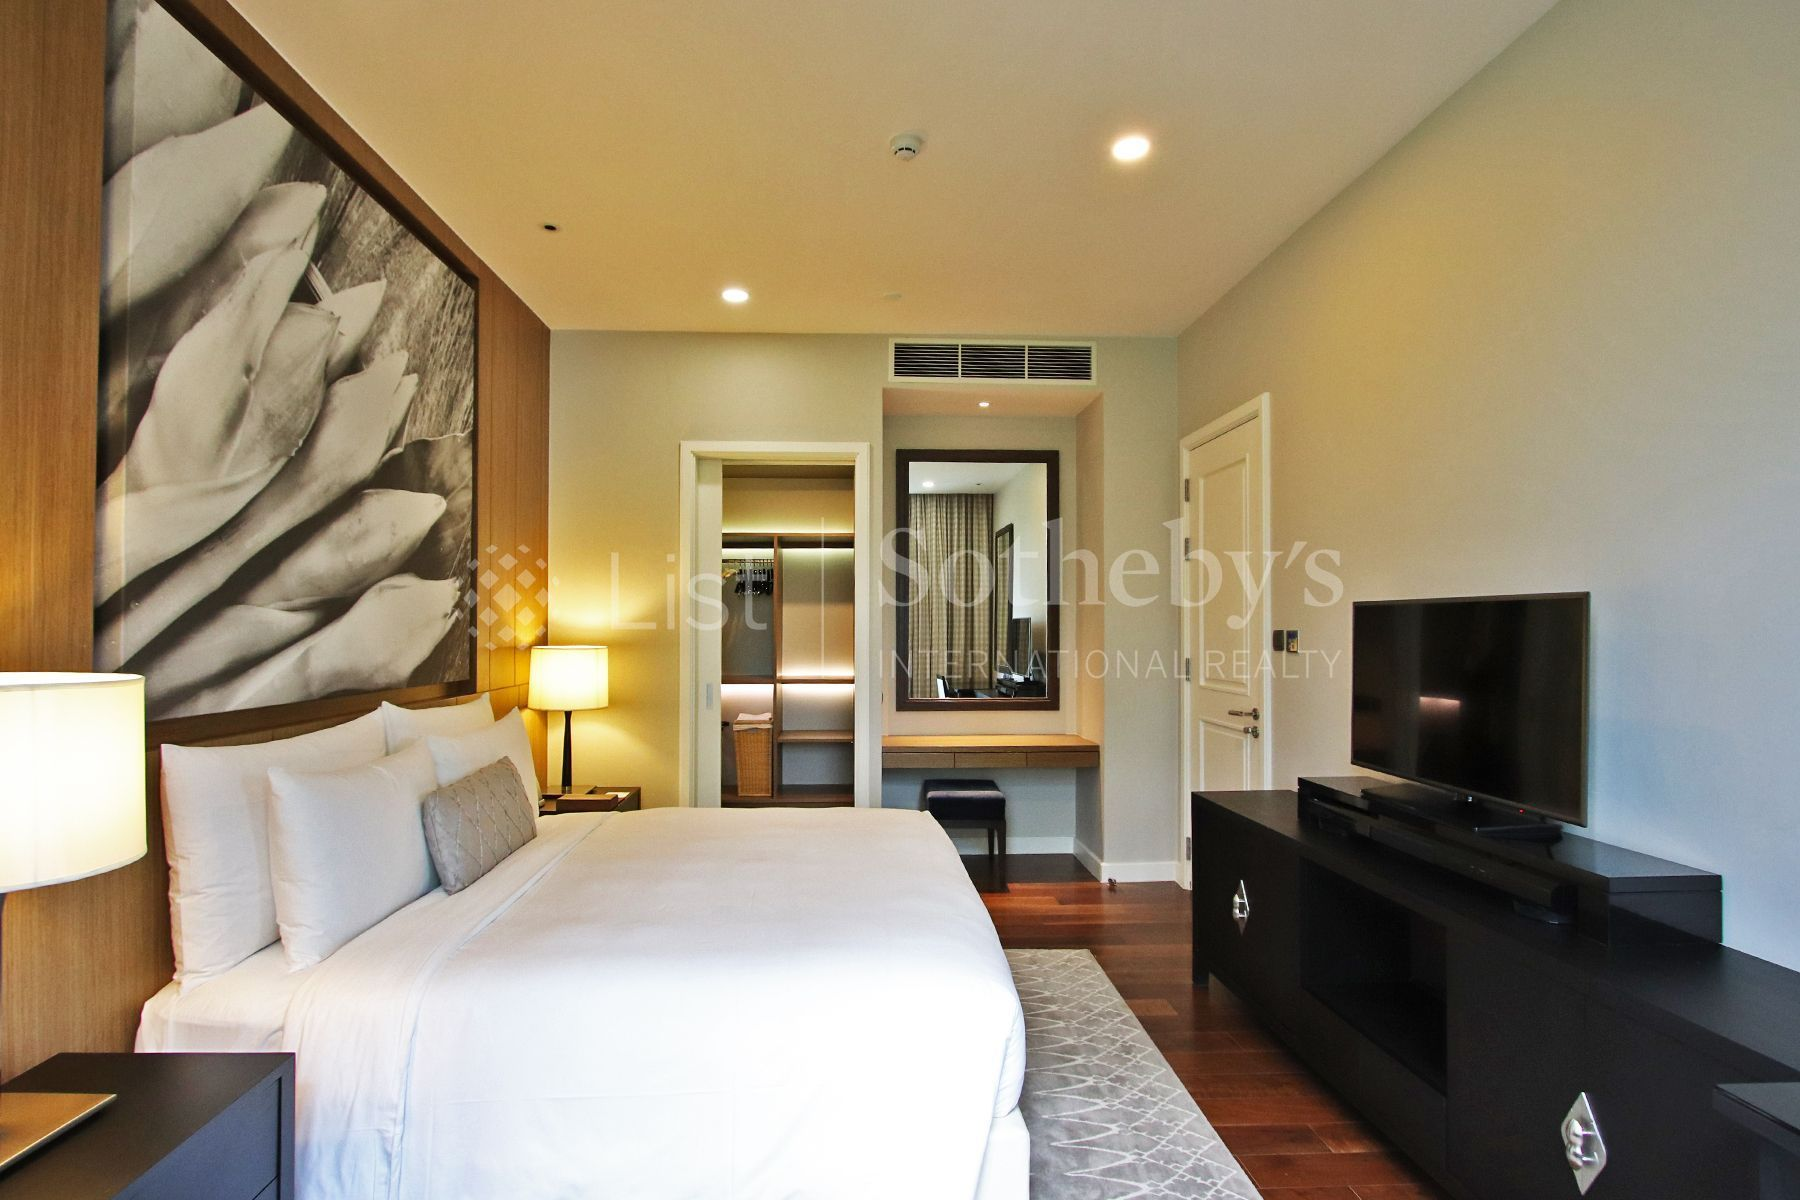 the-pillars-executive-one-bedroom-137-pillars-suites-residences-bangkok 6